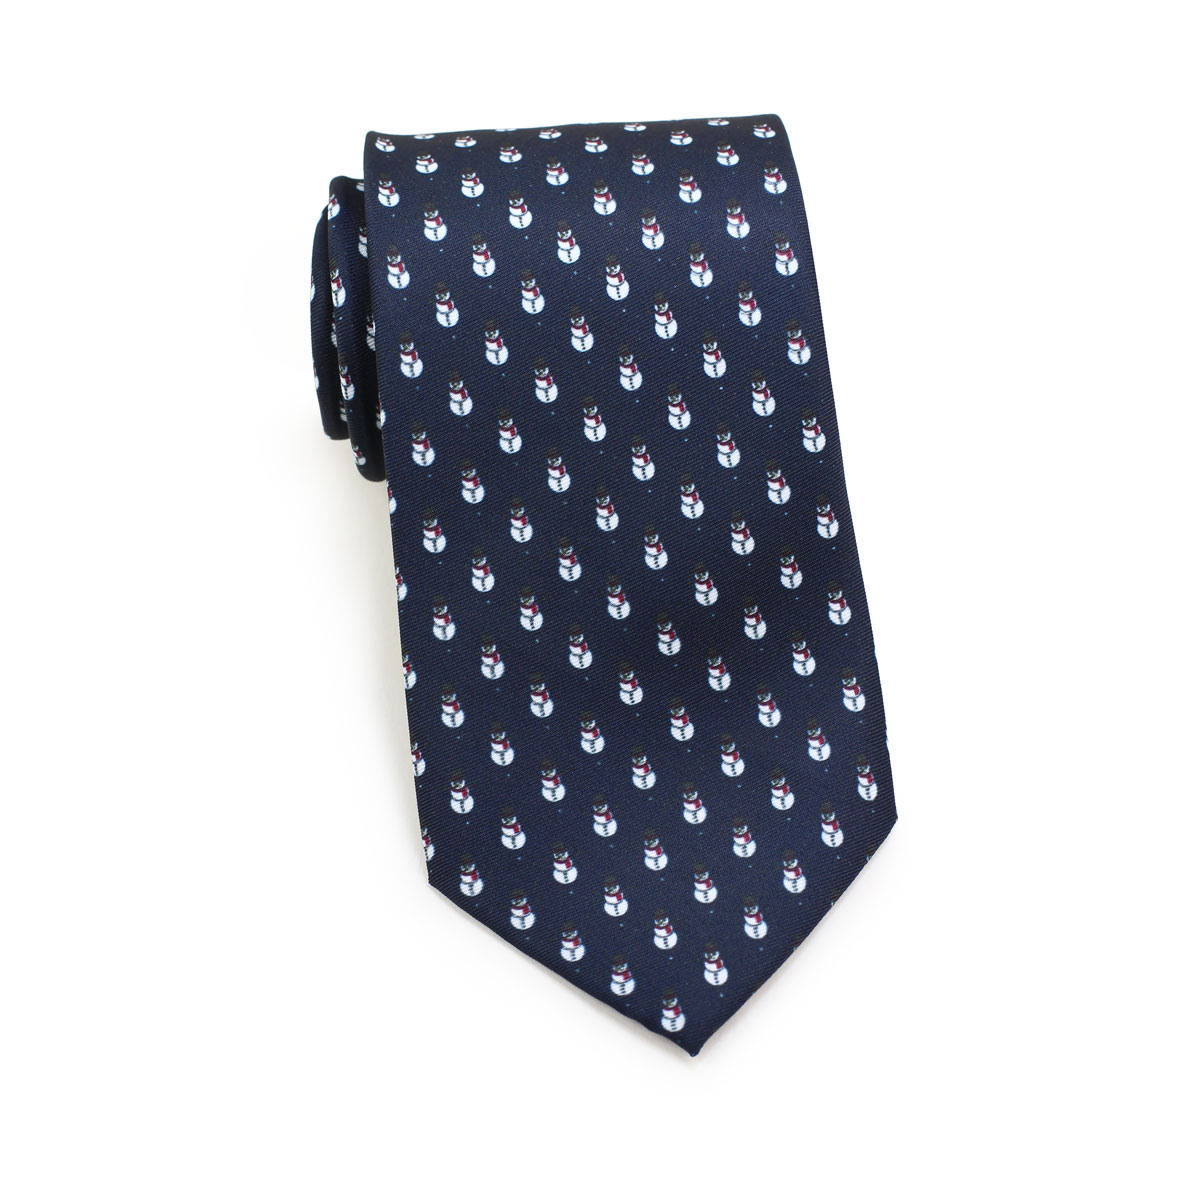 neckties with snowmen in navy blue